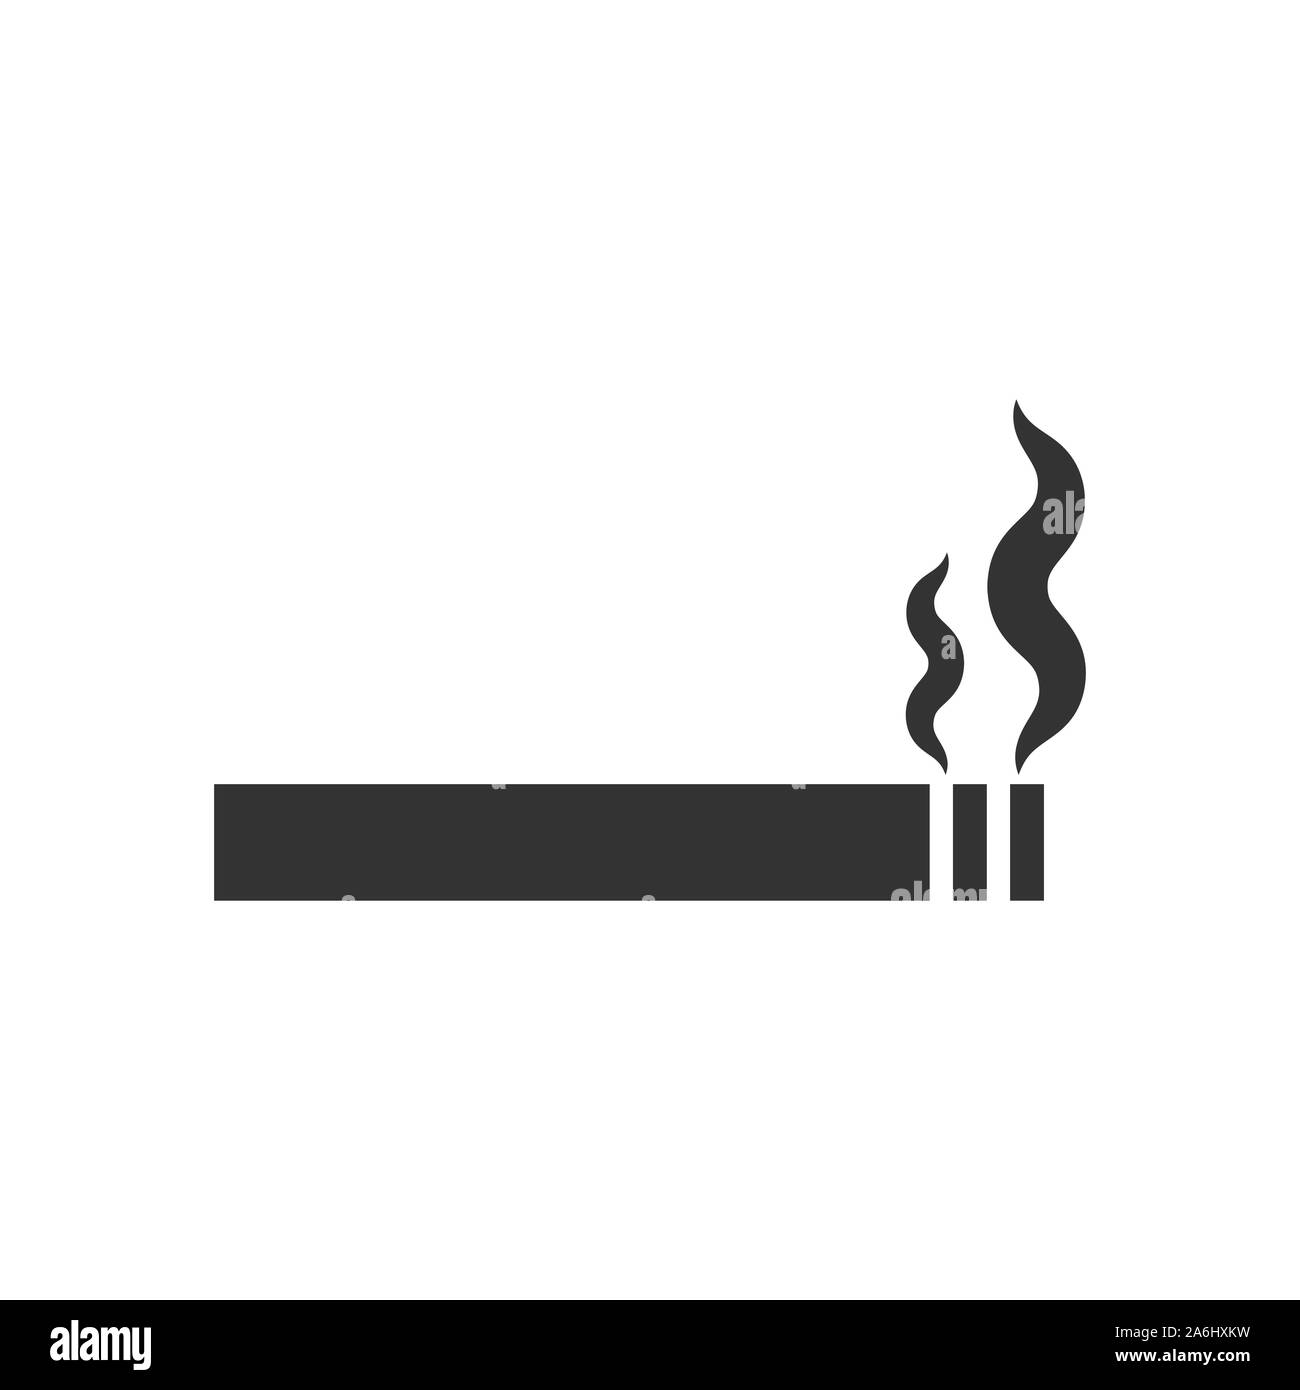 cigarette icon in flat style smoke vector illustration on white isolated background nicotine business concept stock vector image art alamy https www alamy com cigarette icon in flat style smoke vector illustration on white isolated background nicotine business concept image331079053 html